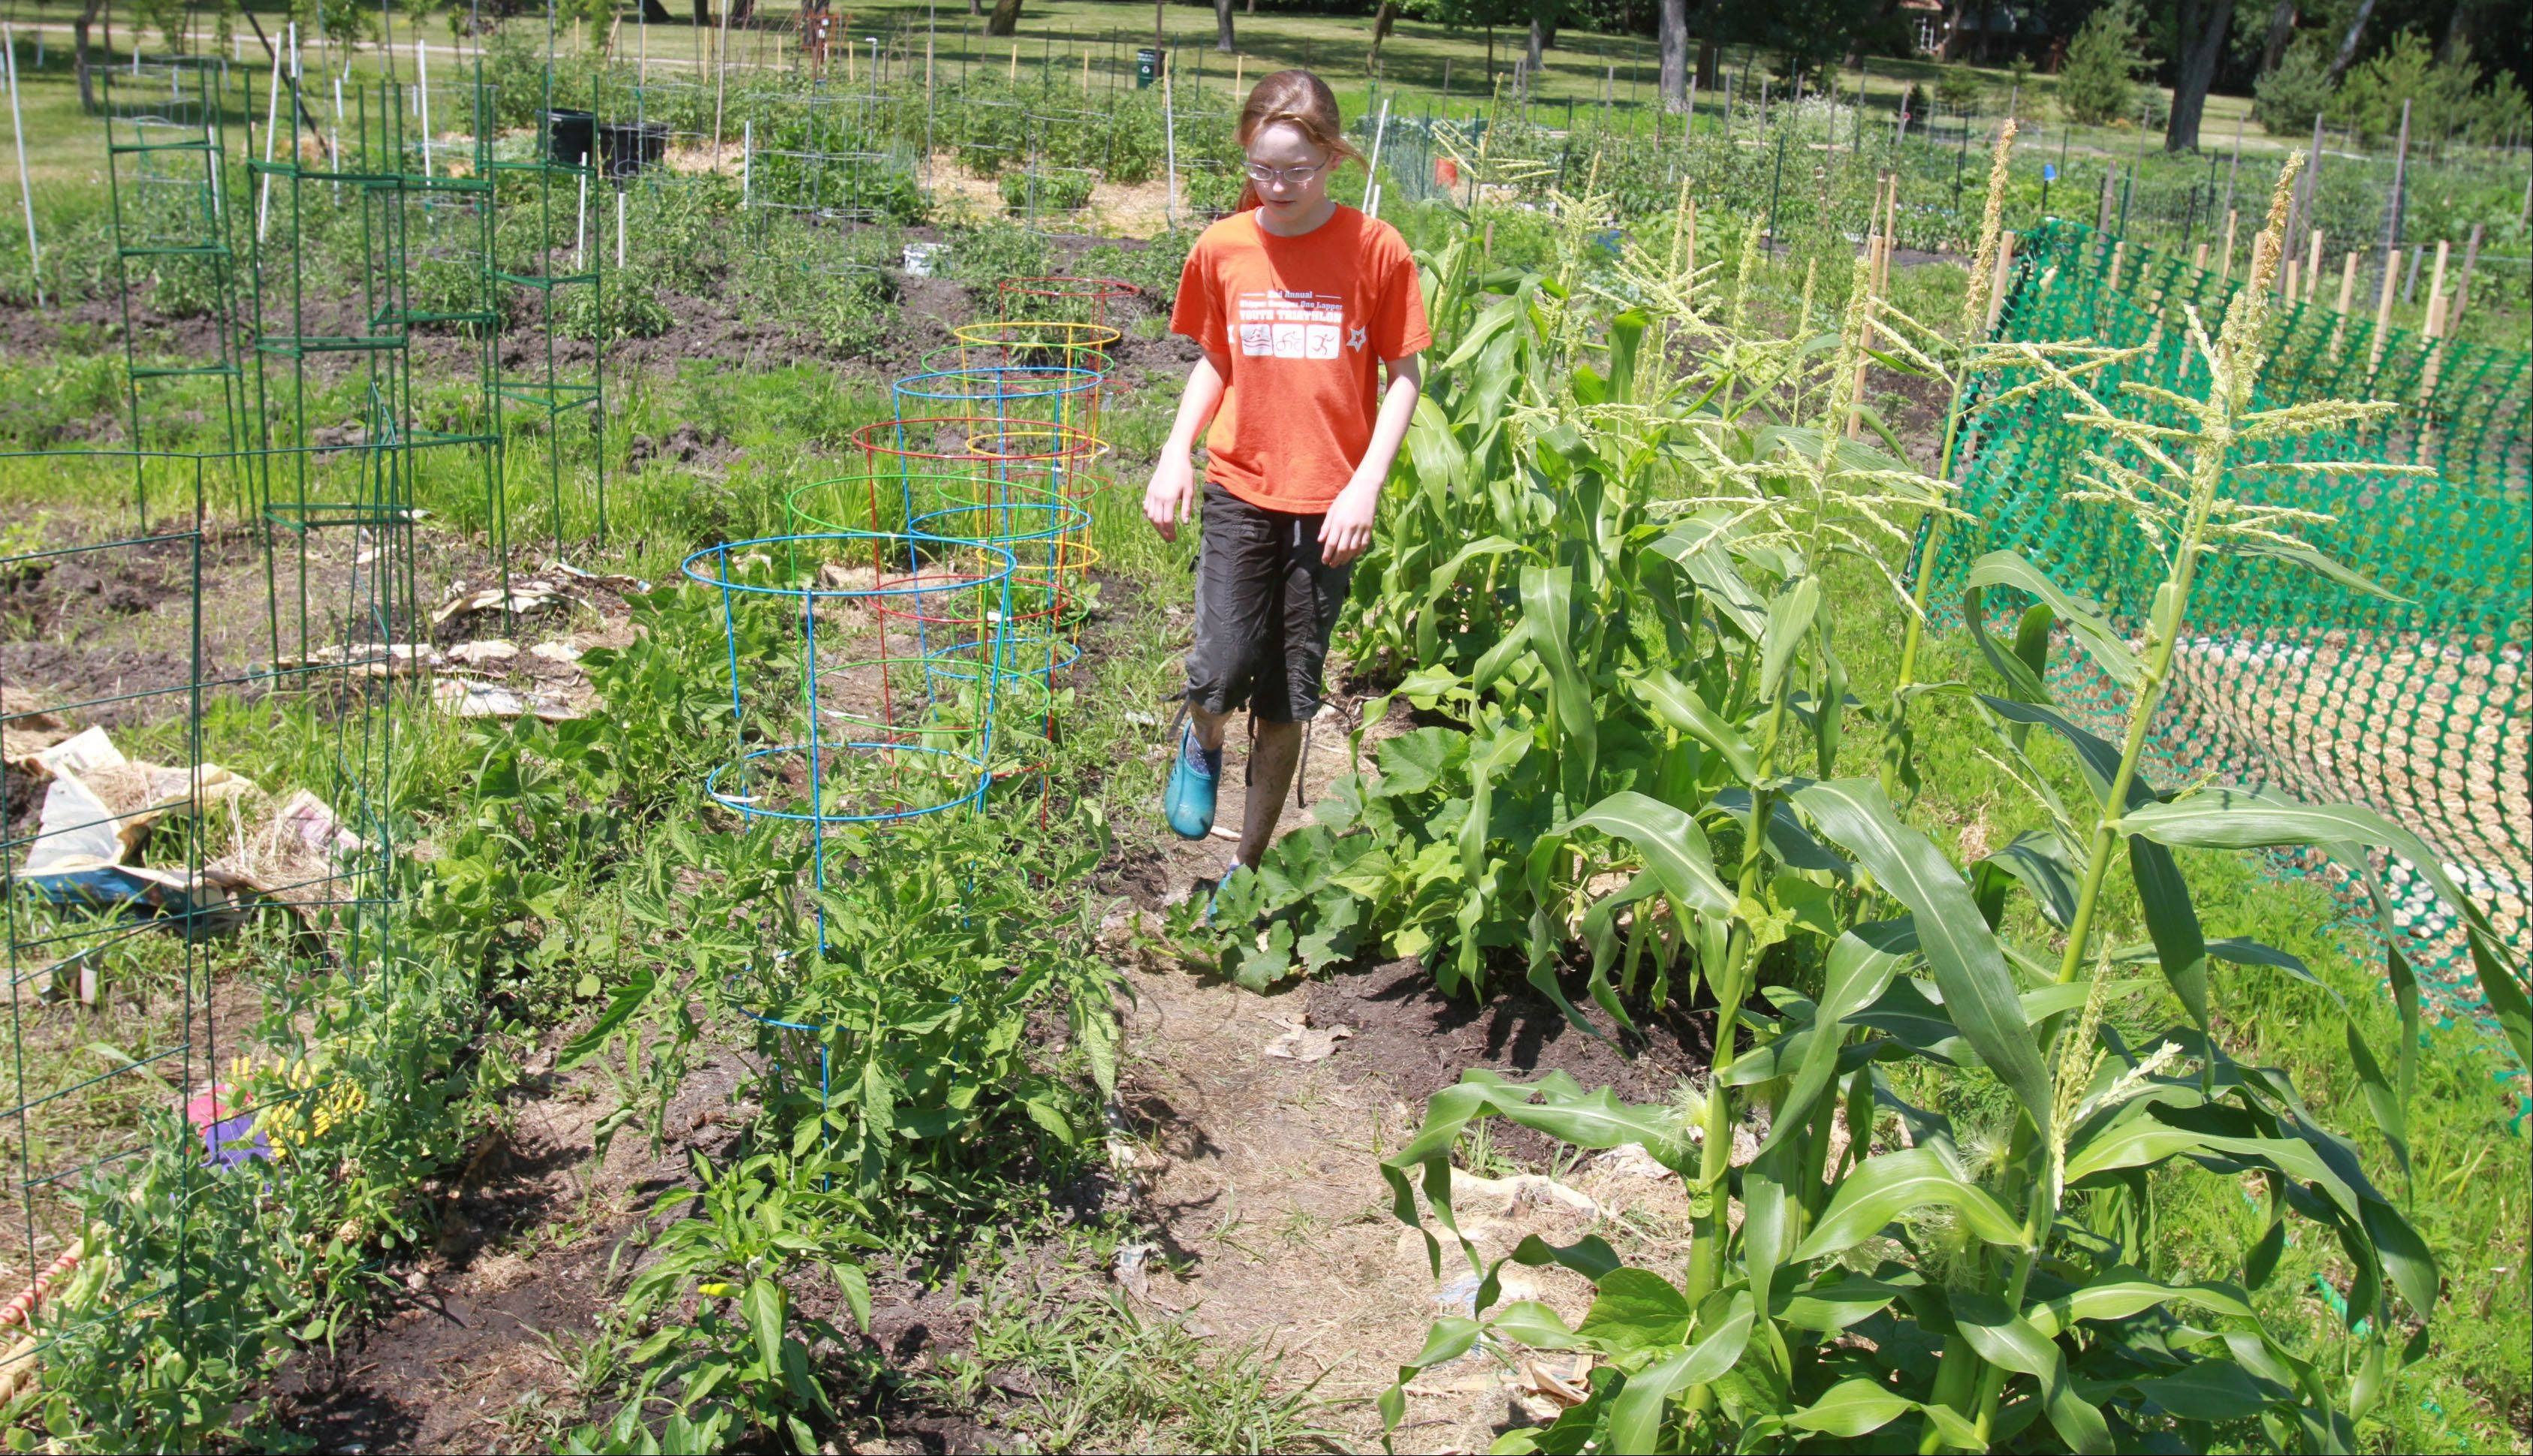 George LeClaire/gleclaire@dailyherald.comVolunteer Mili Meredith, 11, of Arlington Heights walks across the new produce garden plot, created by the Arlington Heights Neighborhood Association, in Frontier Park in Arlington Heights. The produce is donated to the Wheeling Township Food Pantry.